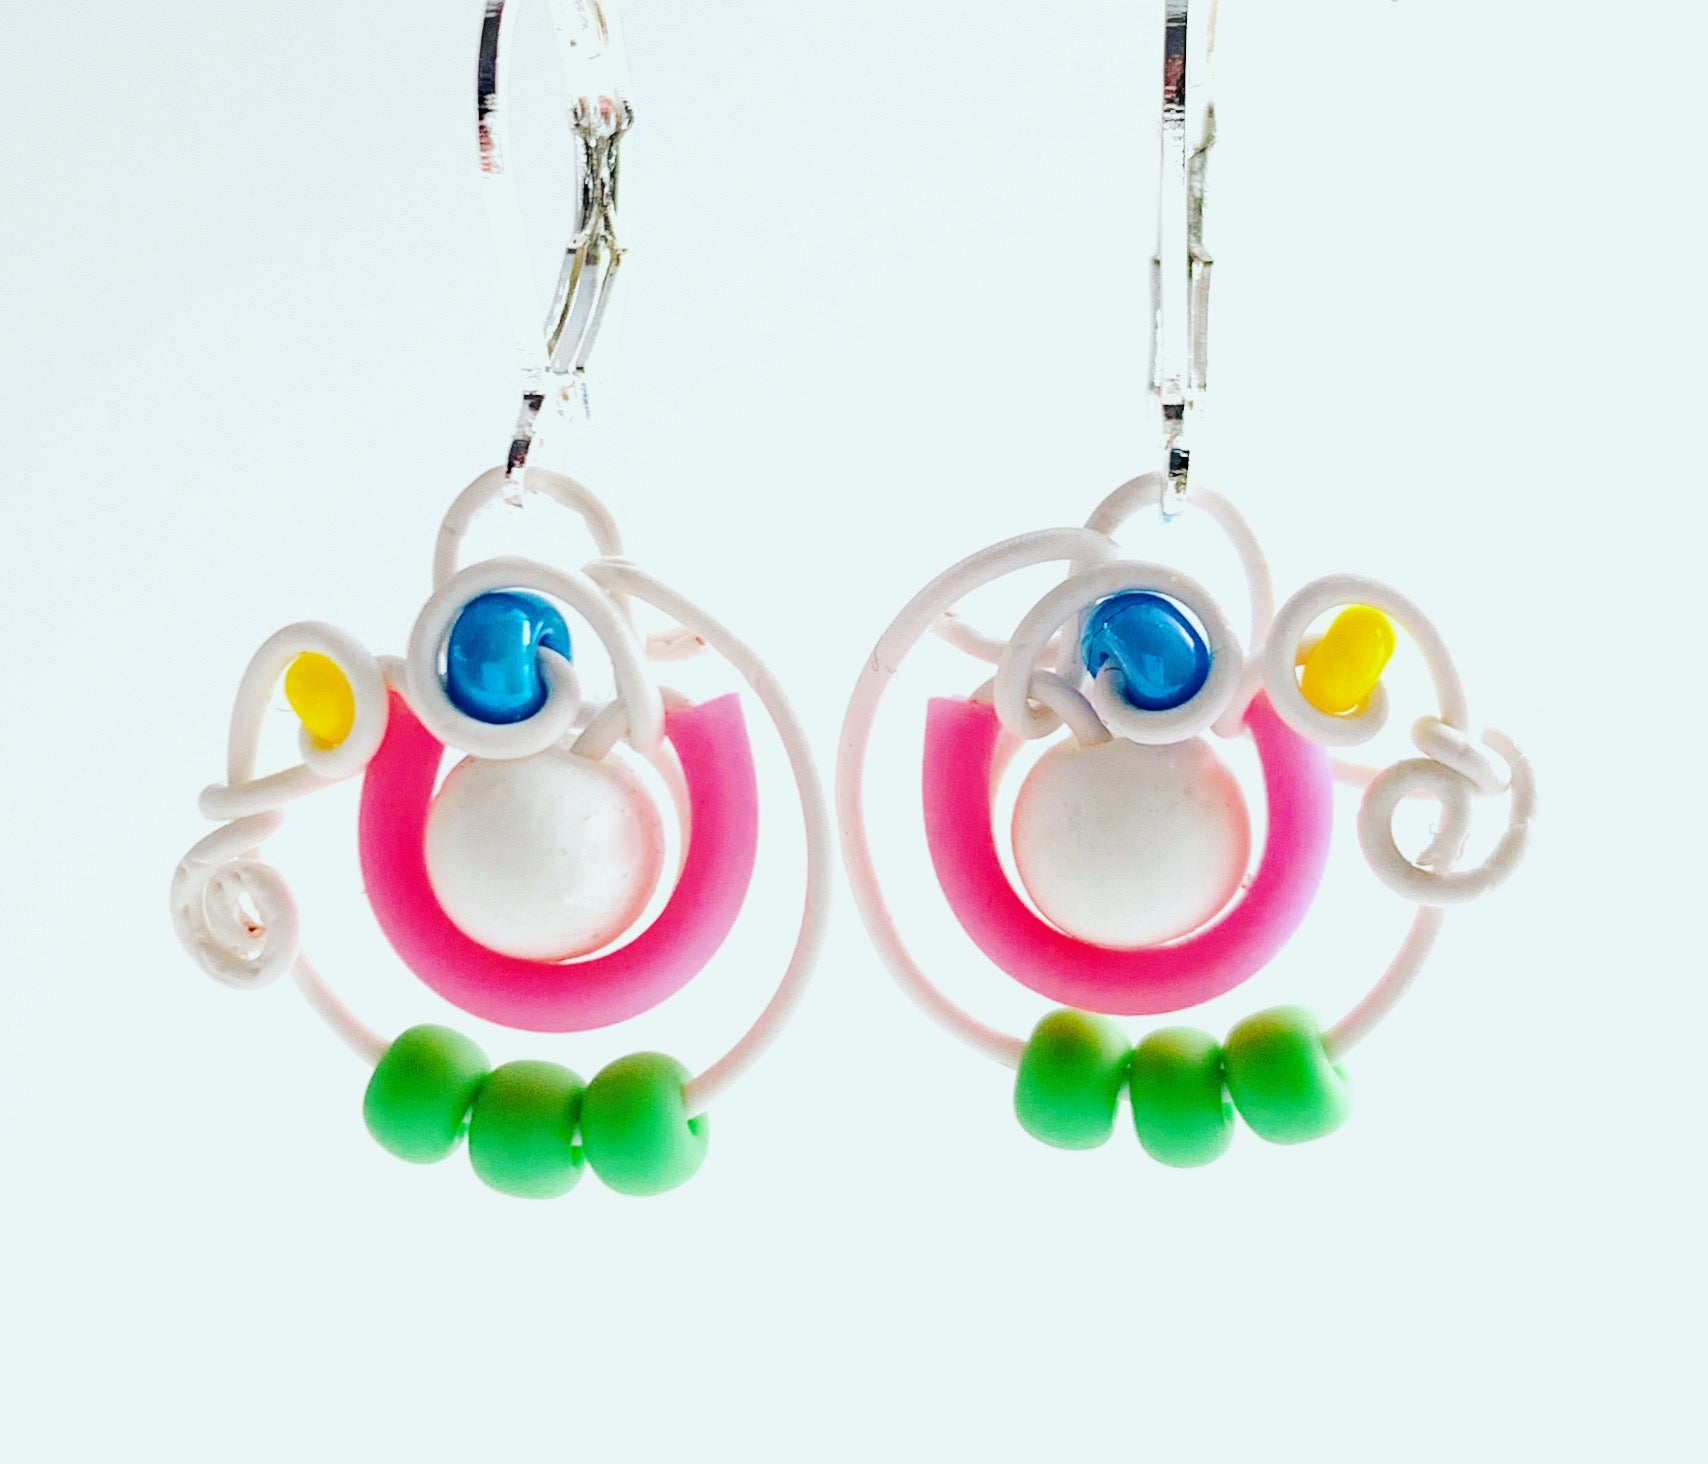 Techno Colour Classic MiMi Earrings with white, pink and green